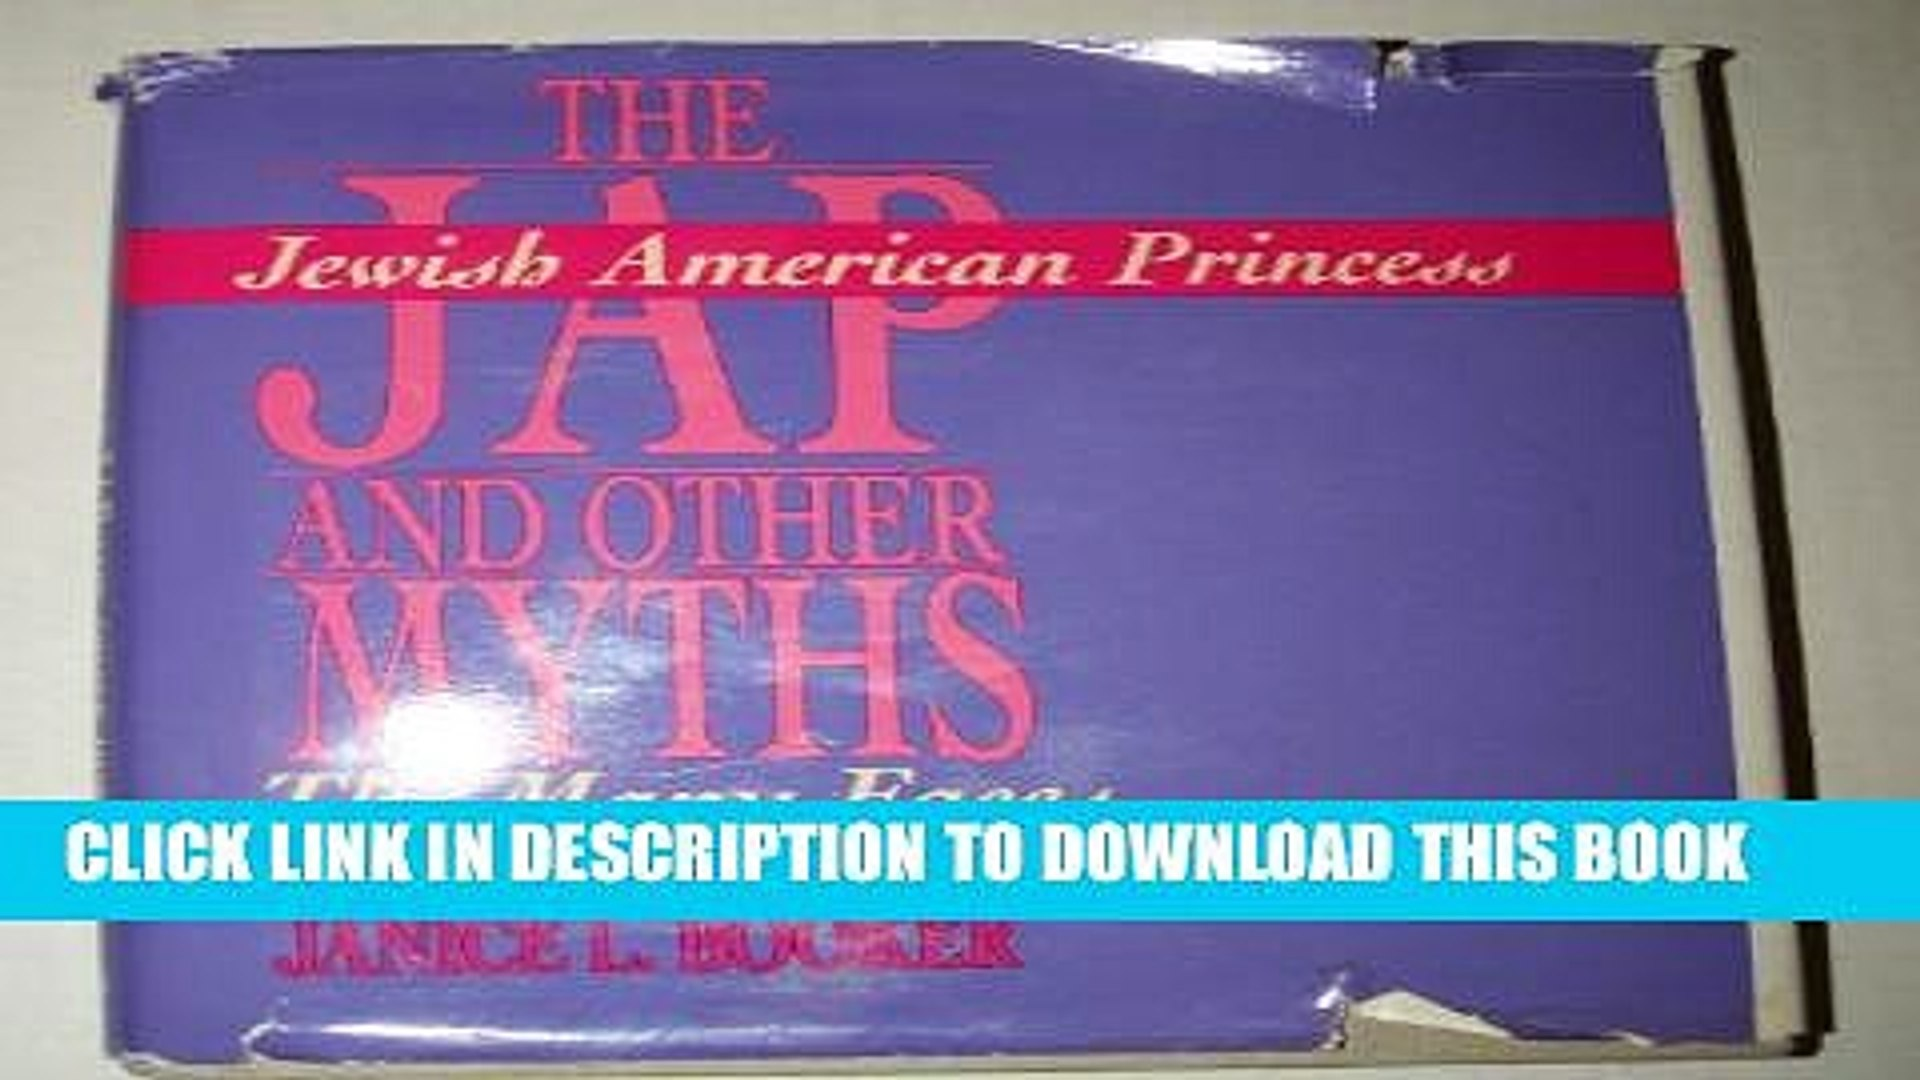 [PDF] The Jewish American Princess and Other Myths: The Many Faces of Self-Hatred Full Online